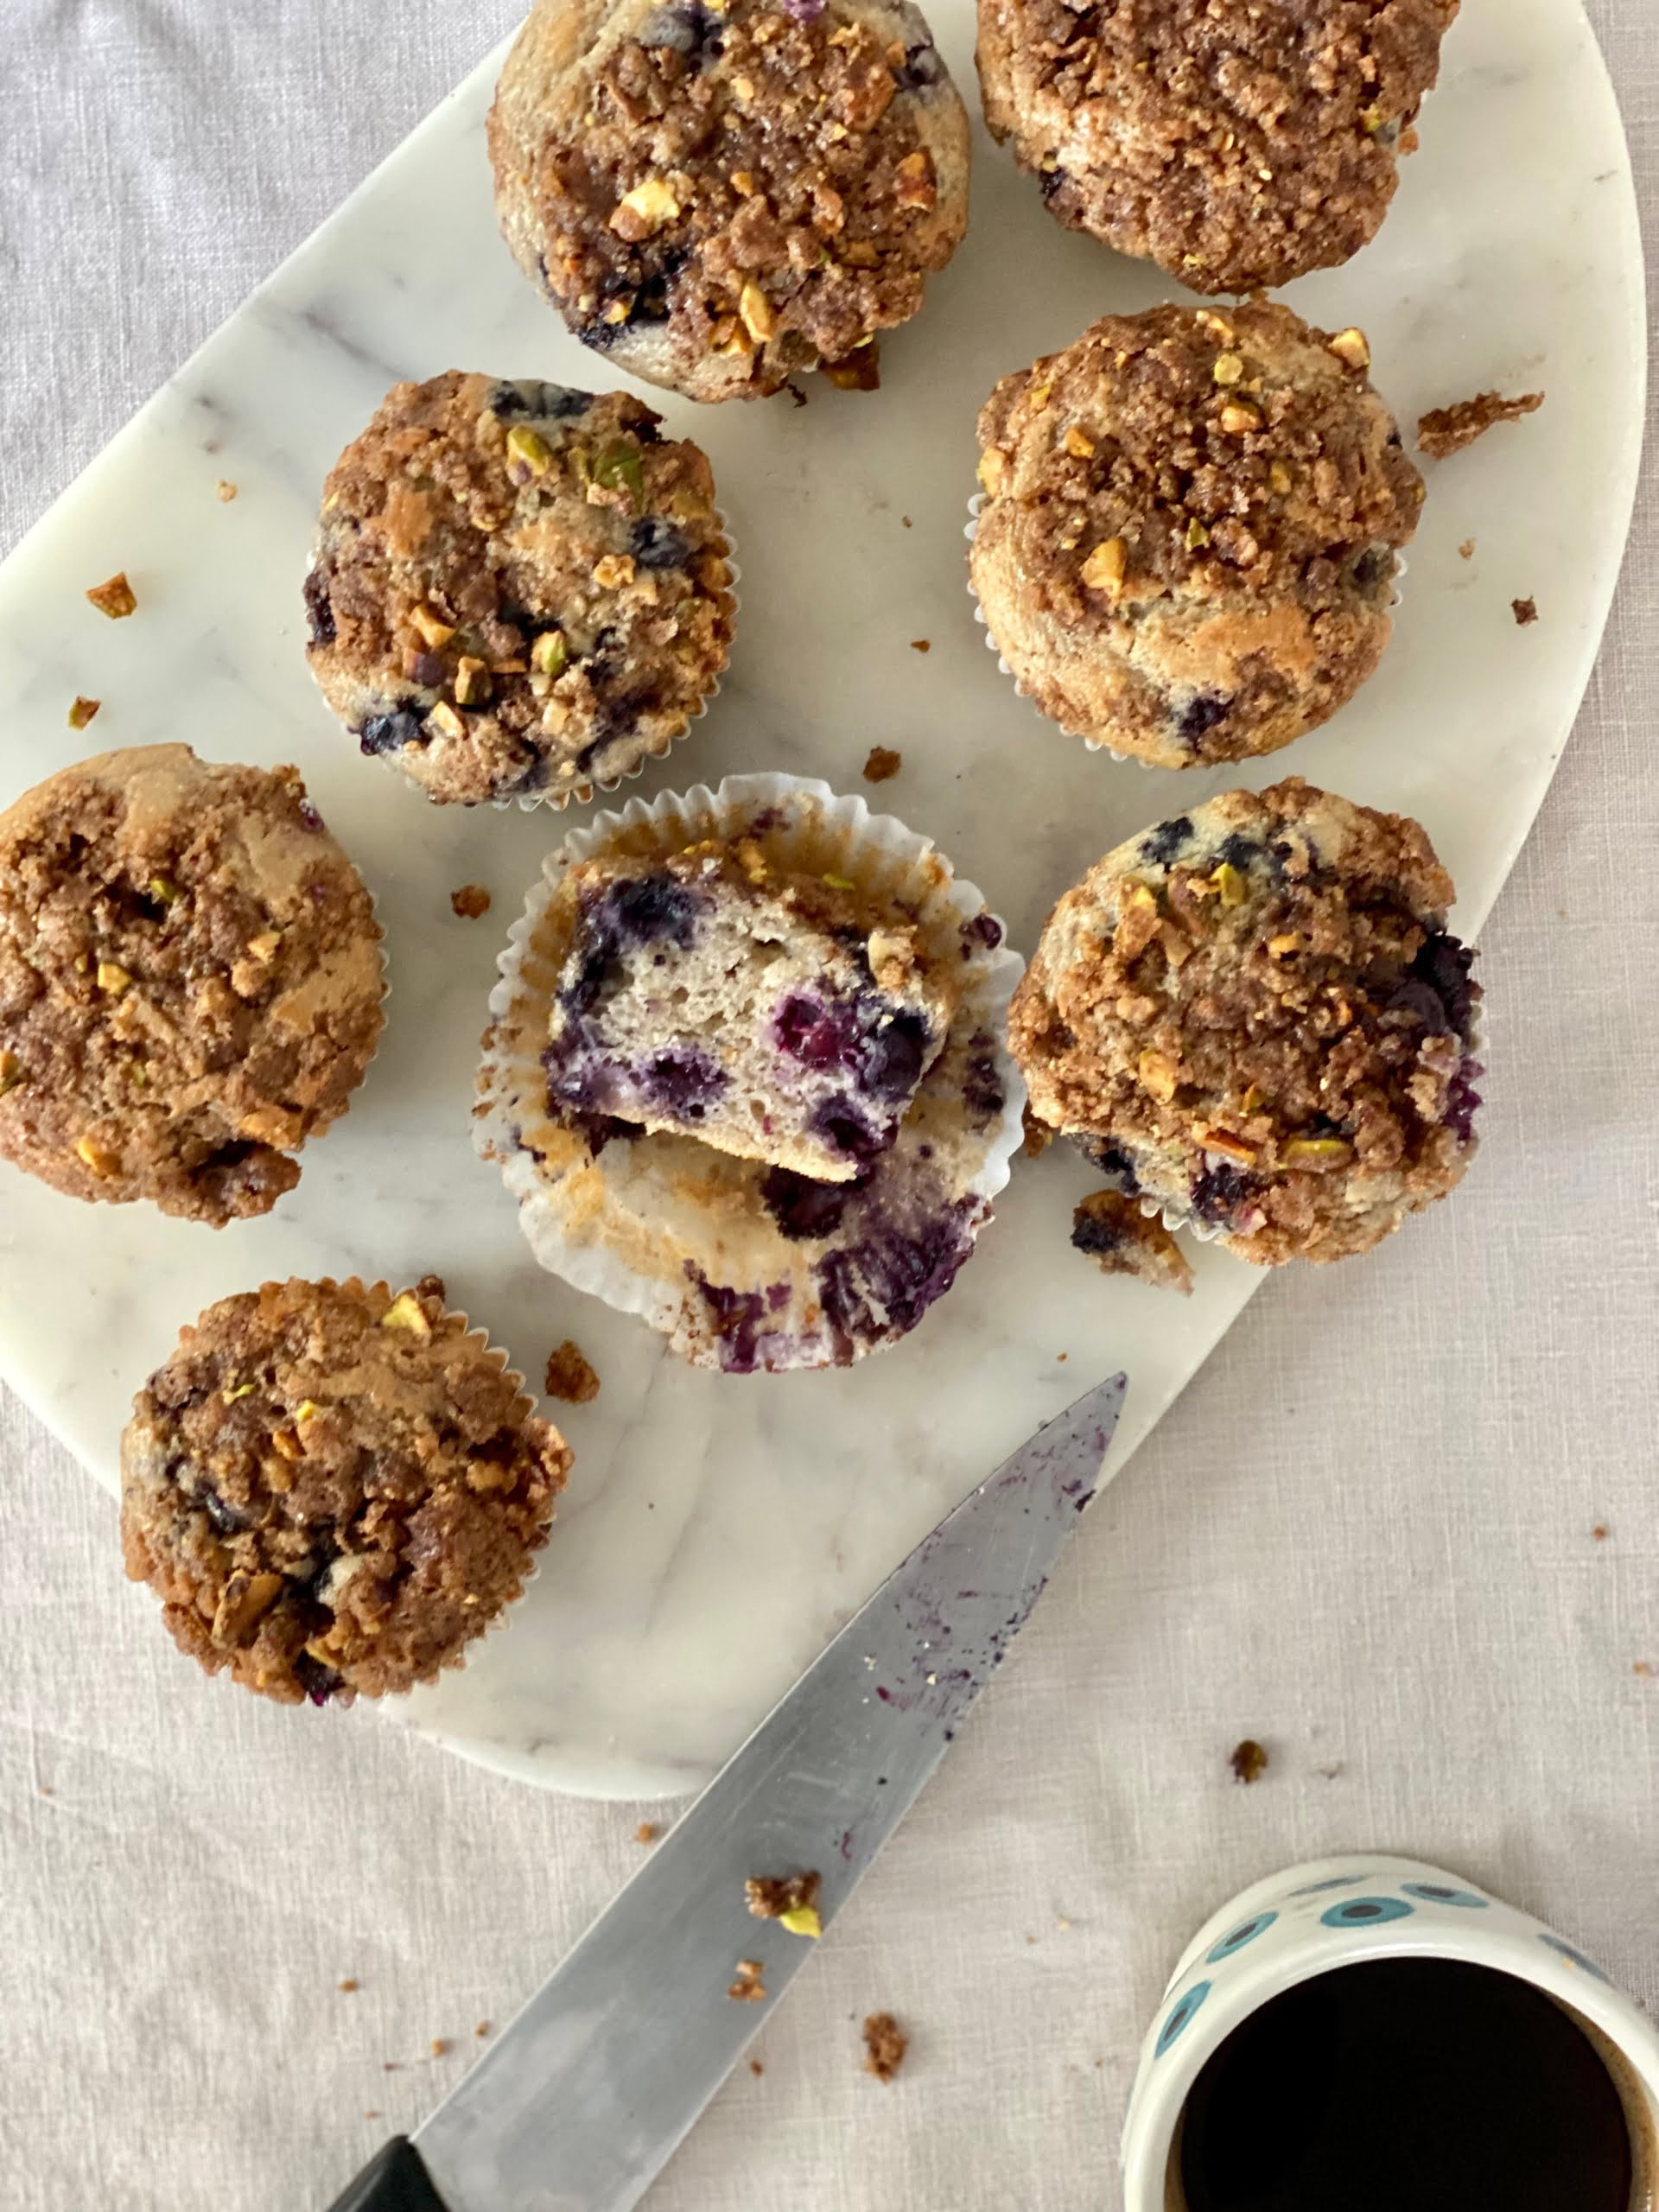 Maple Blueberry Muffins with Nutty Streusel Topping and 1 muffin cut in half - Pure Maple